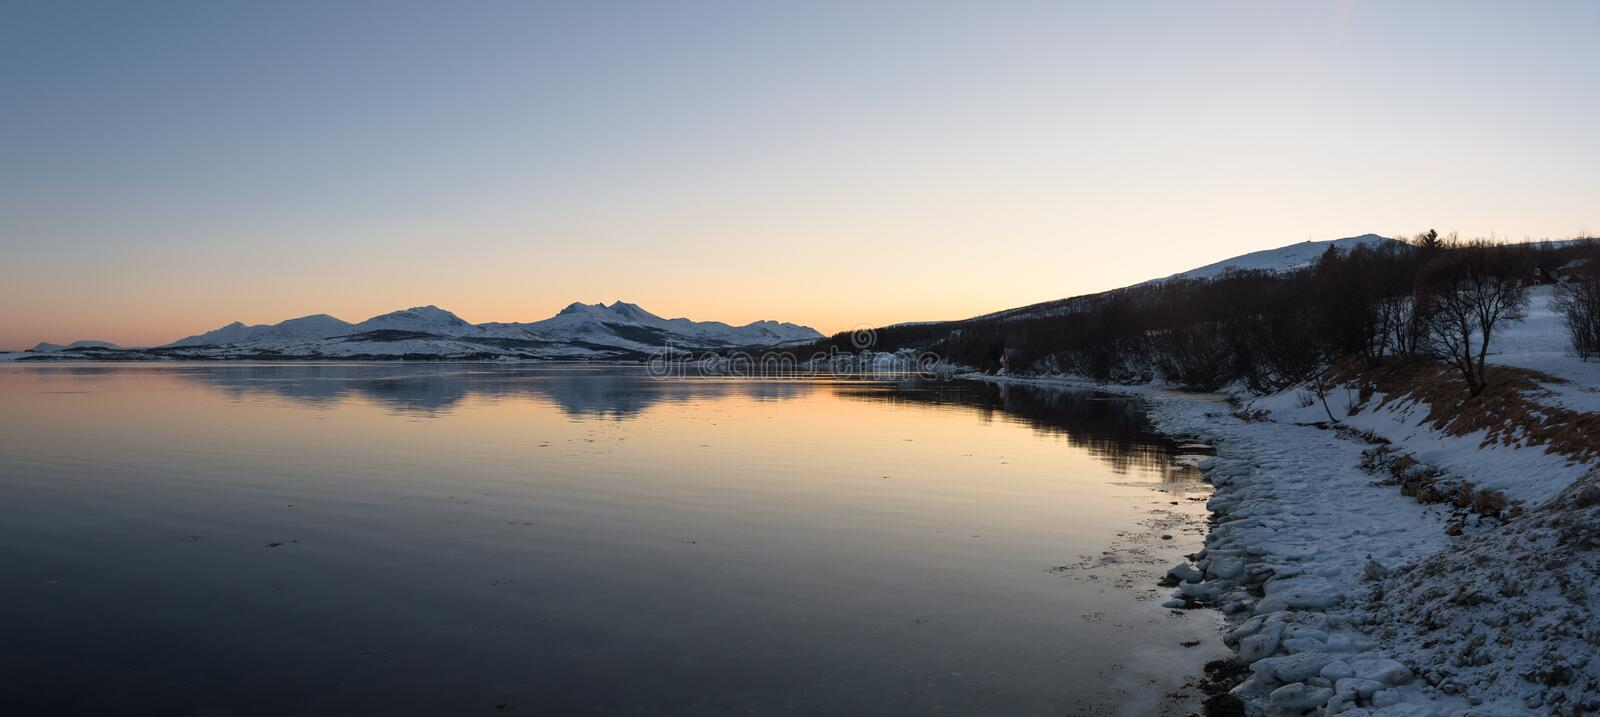 Mirror-like reflections in a Norwegian fjord near Tromsø. Norway just before sunset royalty free stock photography